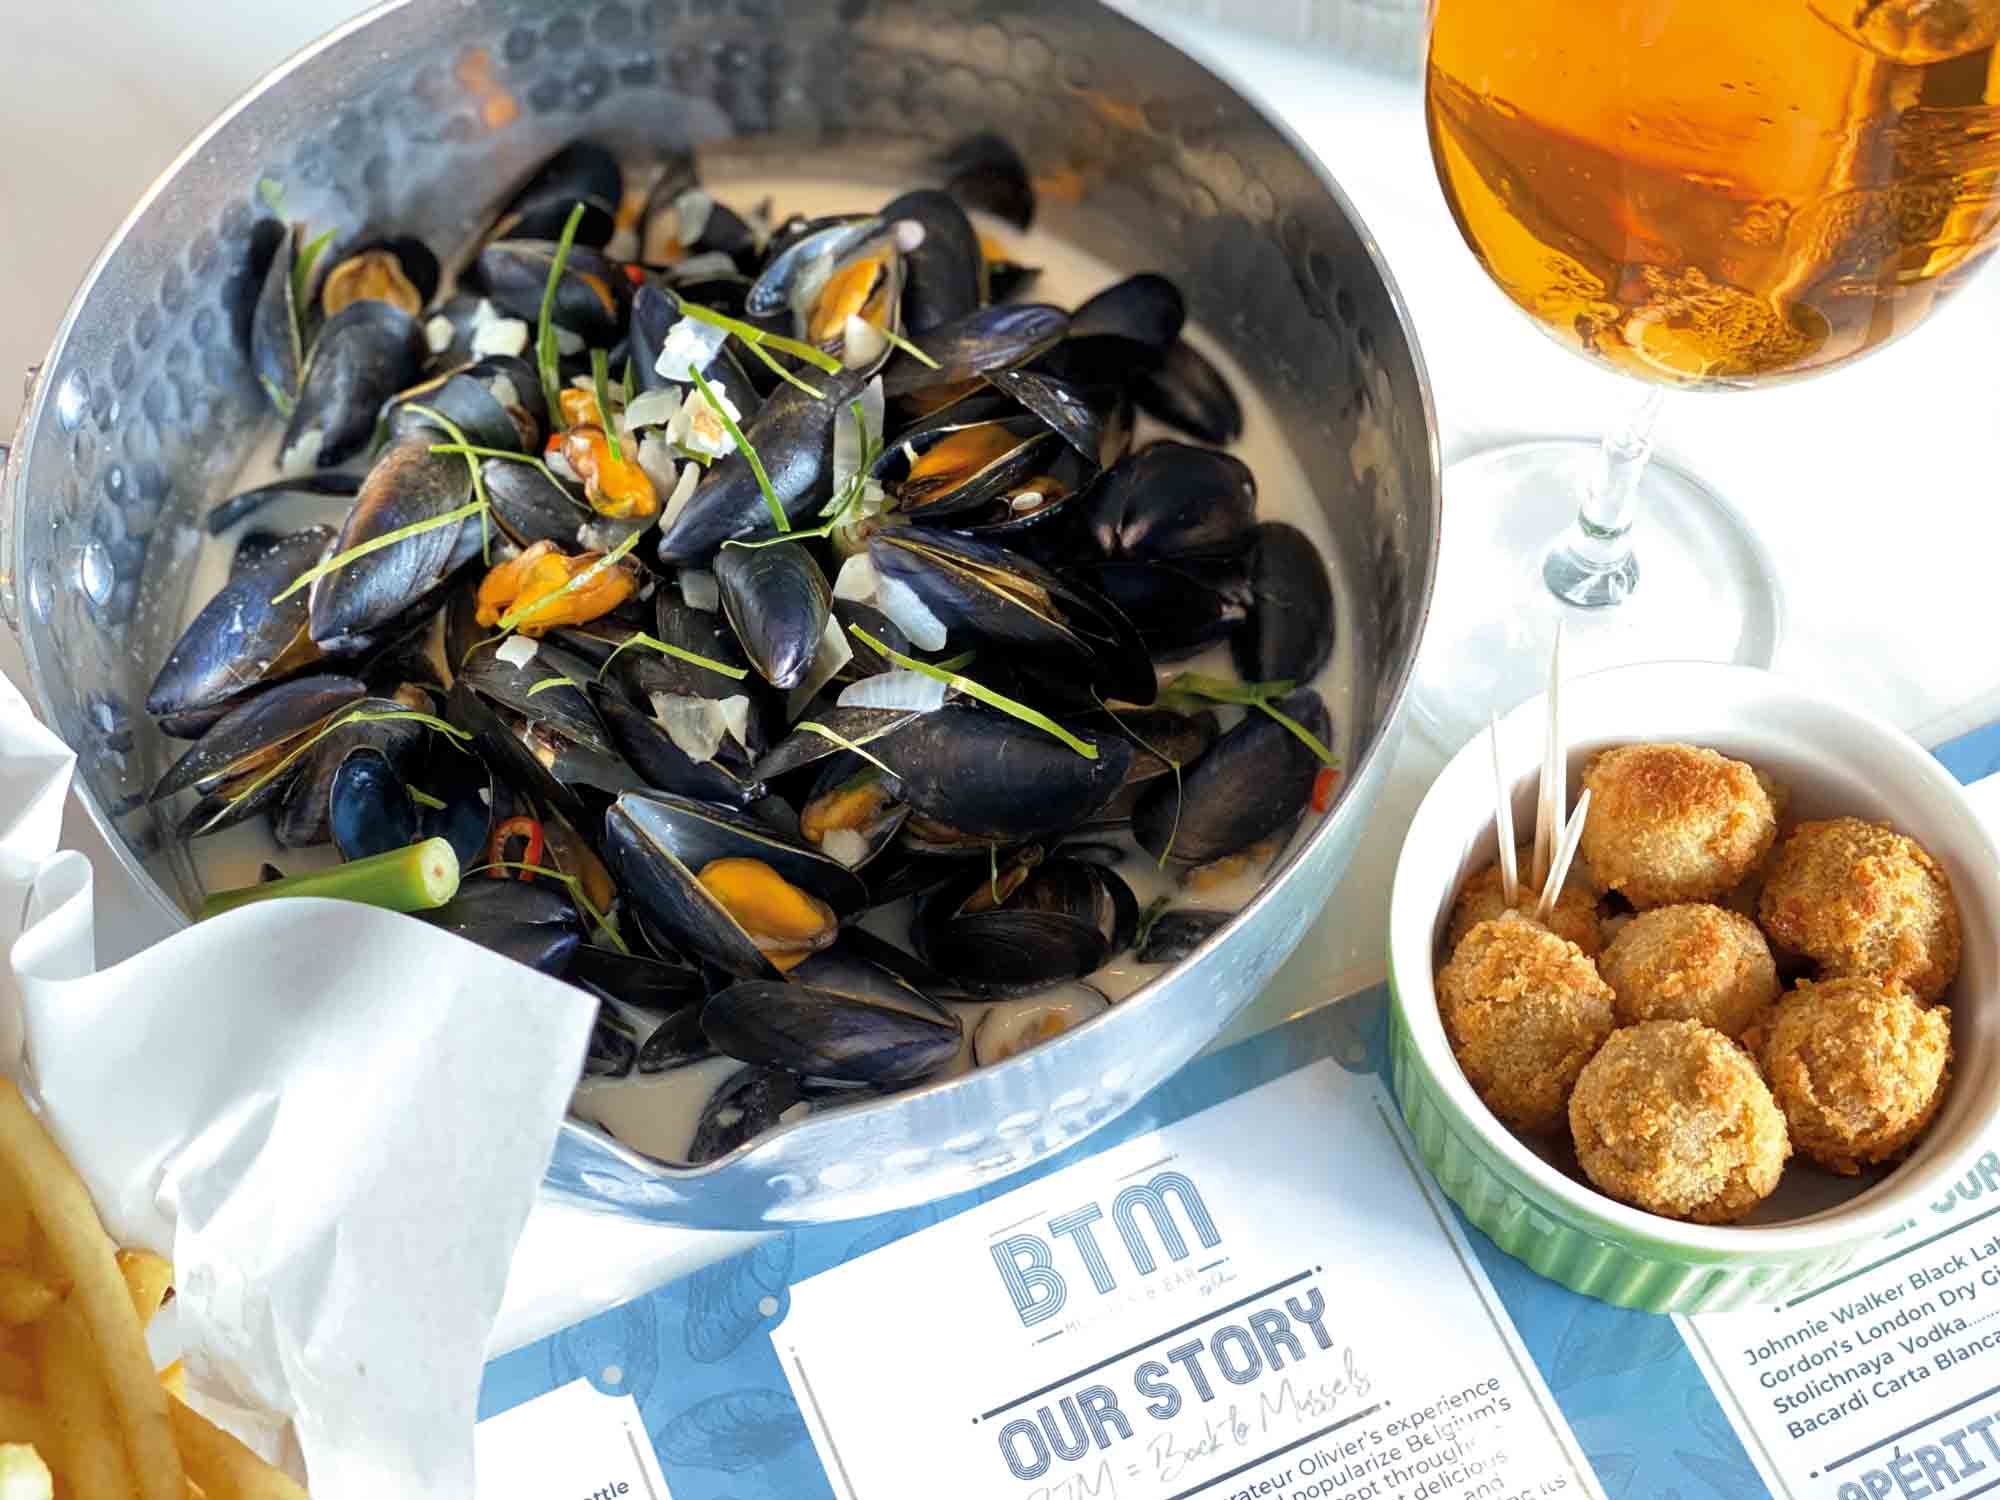 scrumptious delights from BTM Mussels & Bar